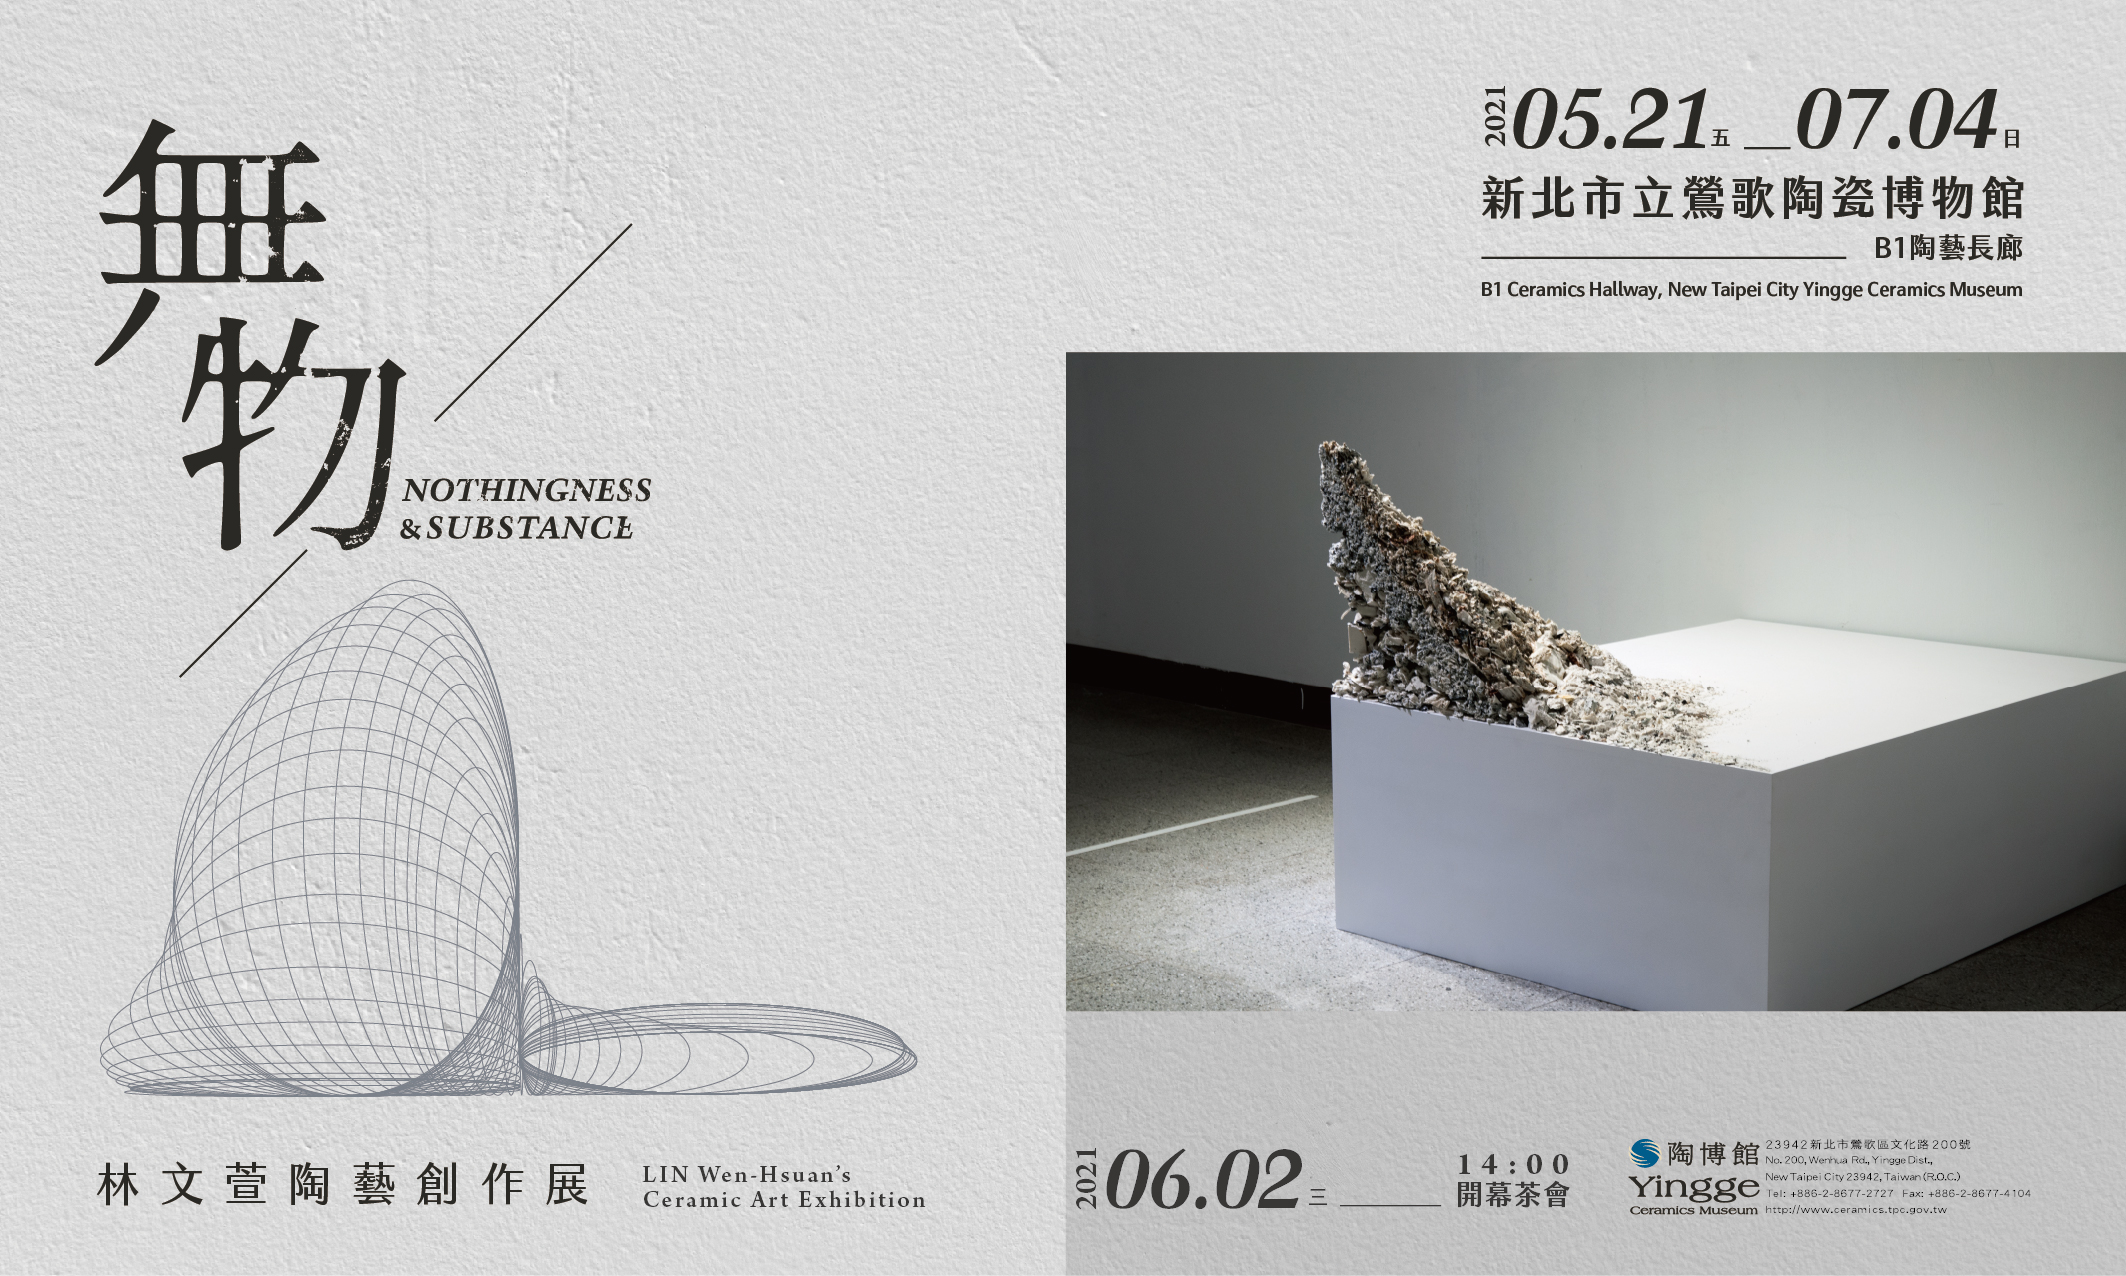 Nothingness & Substance: LIN Wen-Hsuan's Ceramic Art Exhibition